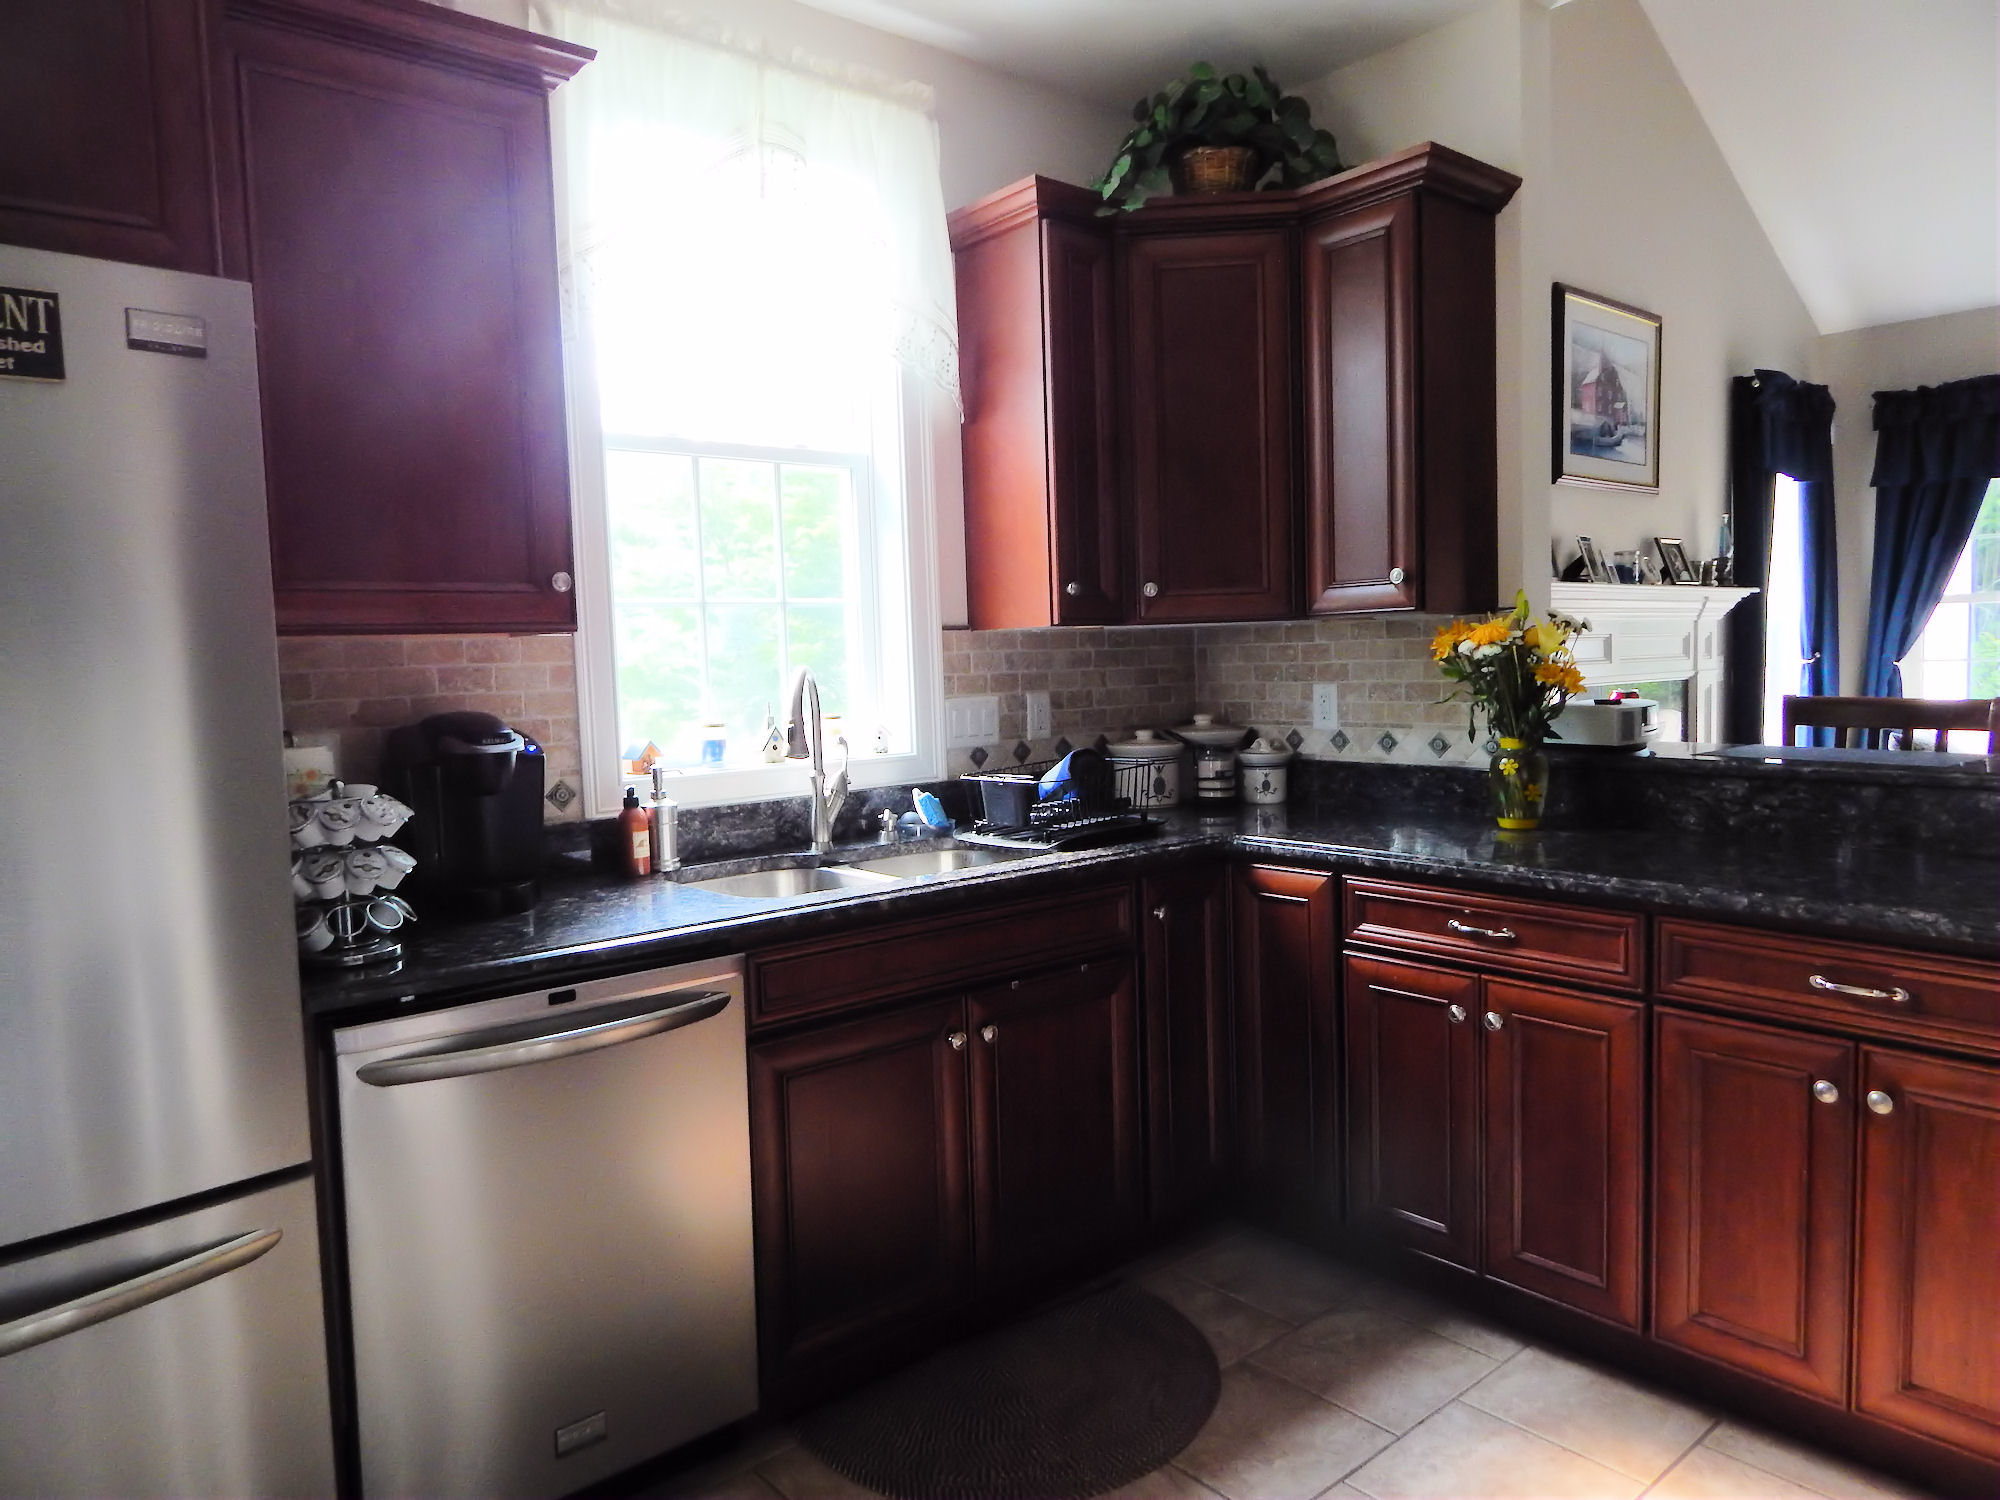 Kitchen with stainless appliances, cherry cabinets, tile floors